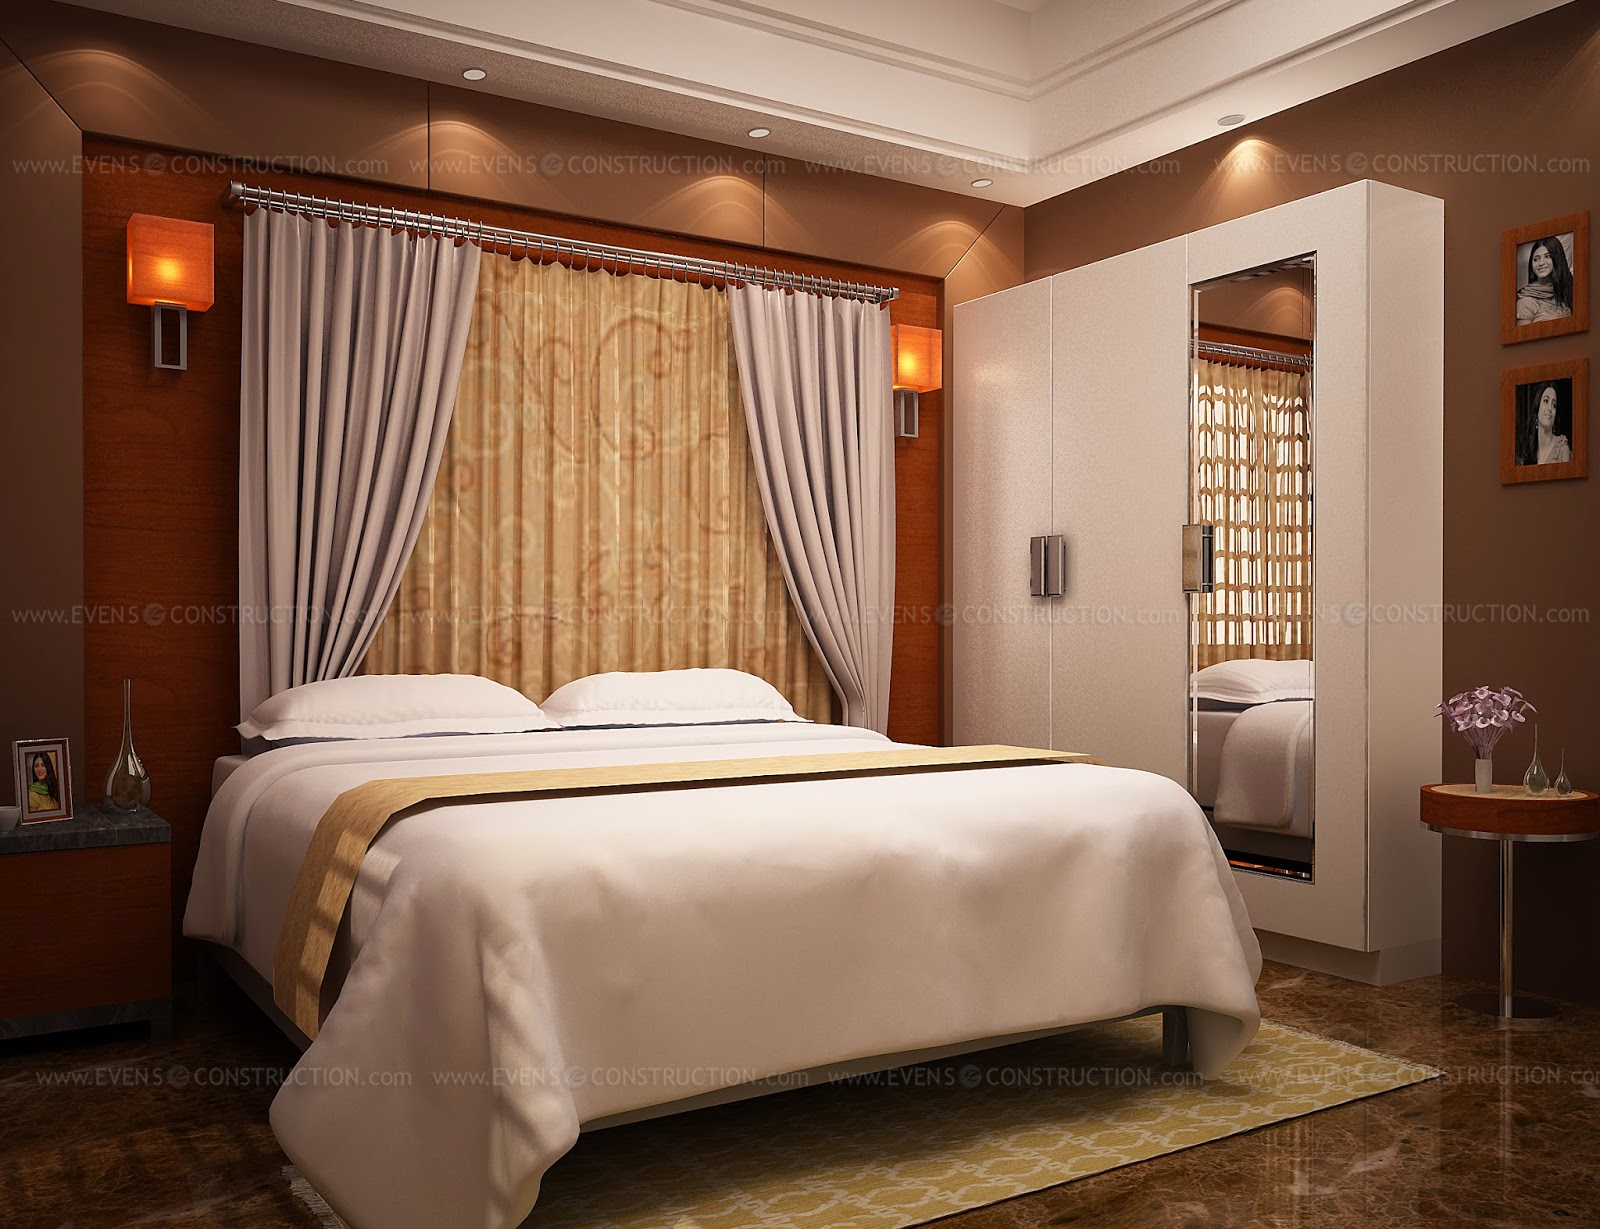 Bedroom Ceiling Designs Kerala Evens Construction Pvt Ltd Awesome Kerala Home Bedroom